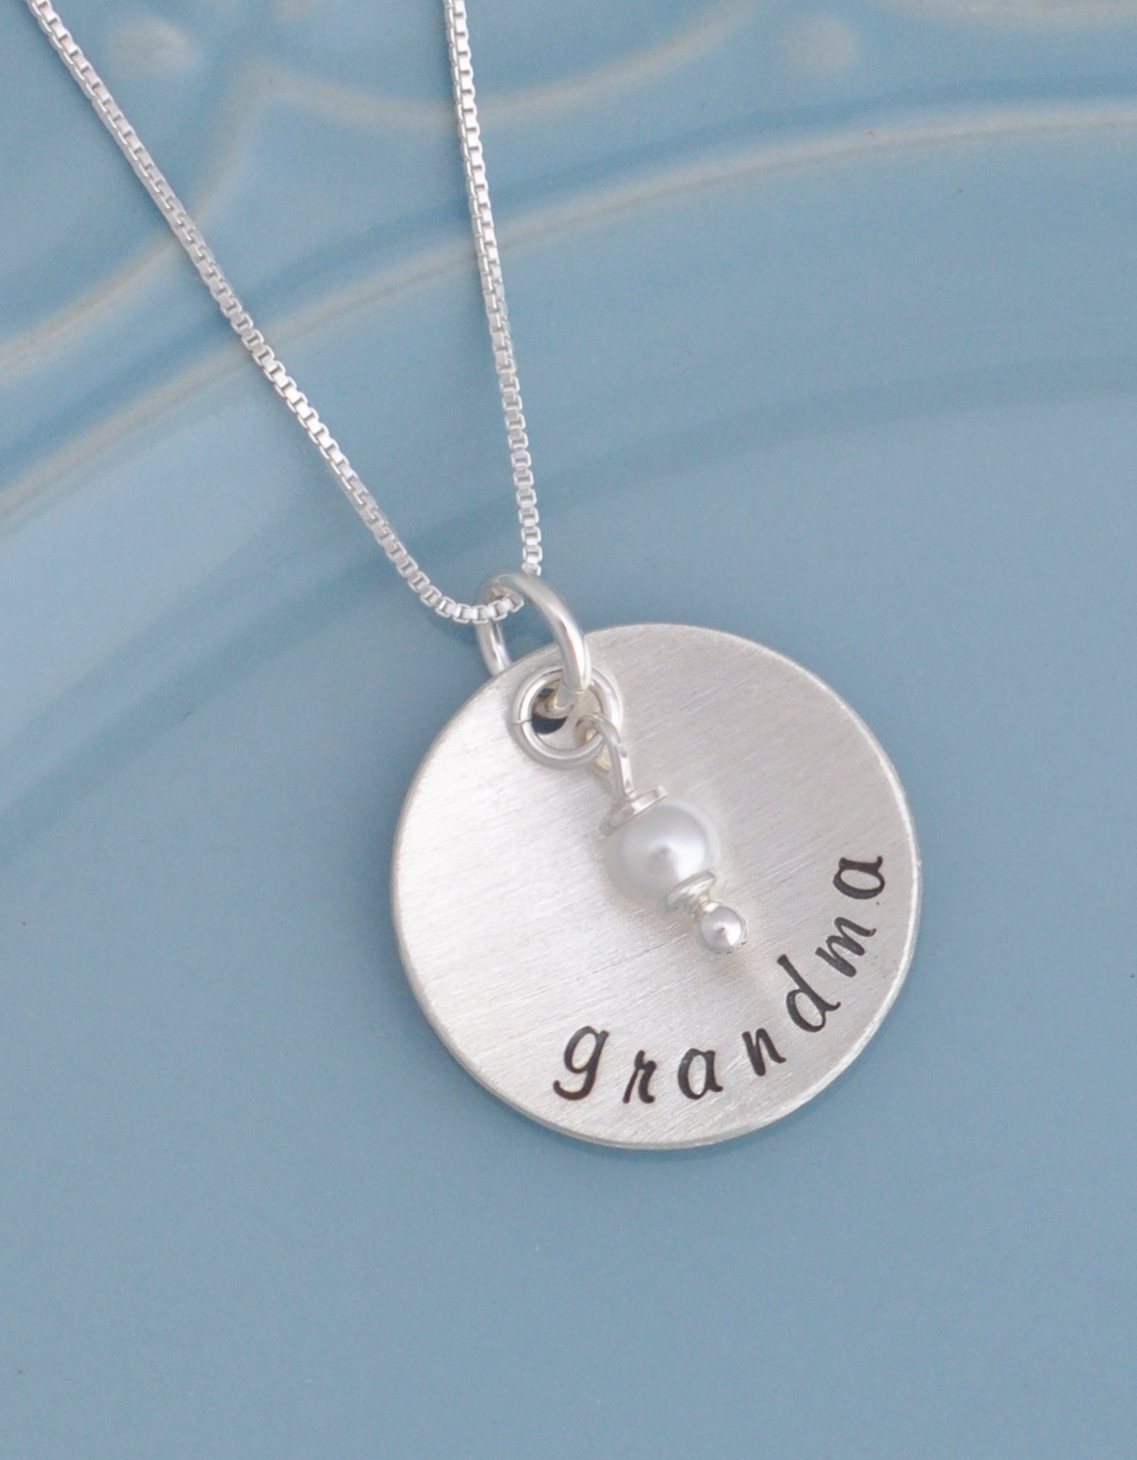 Grandmothers hand stamped necklace great for for Grandmother jewelry you can add to